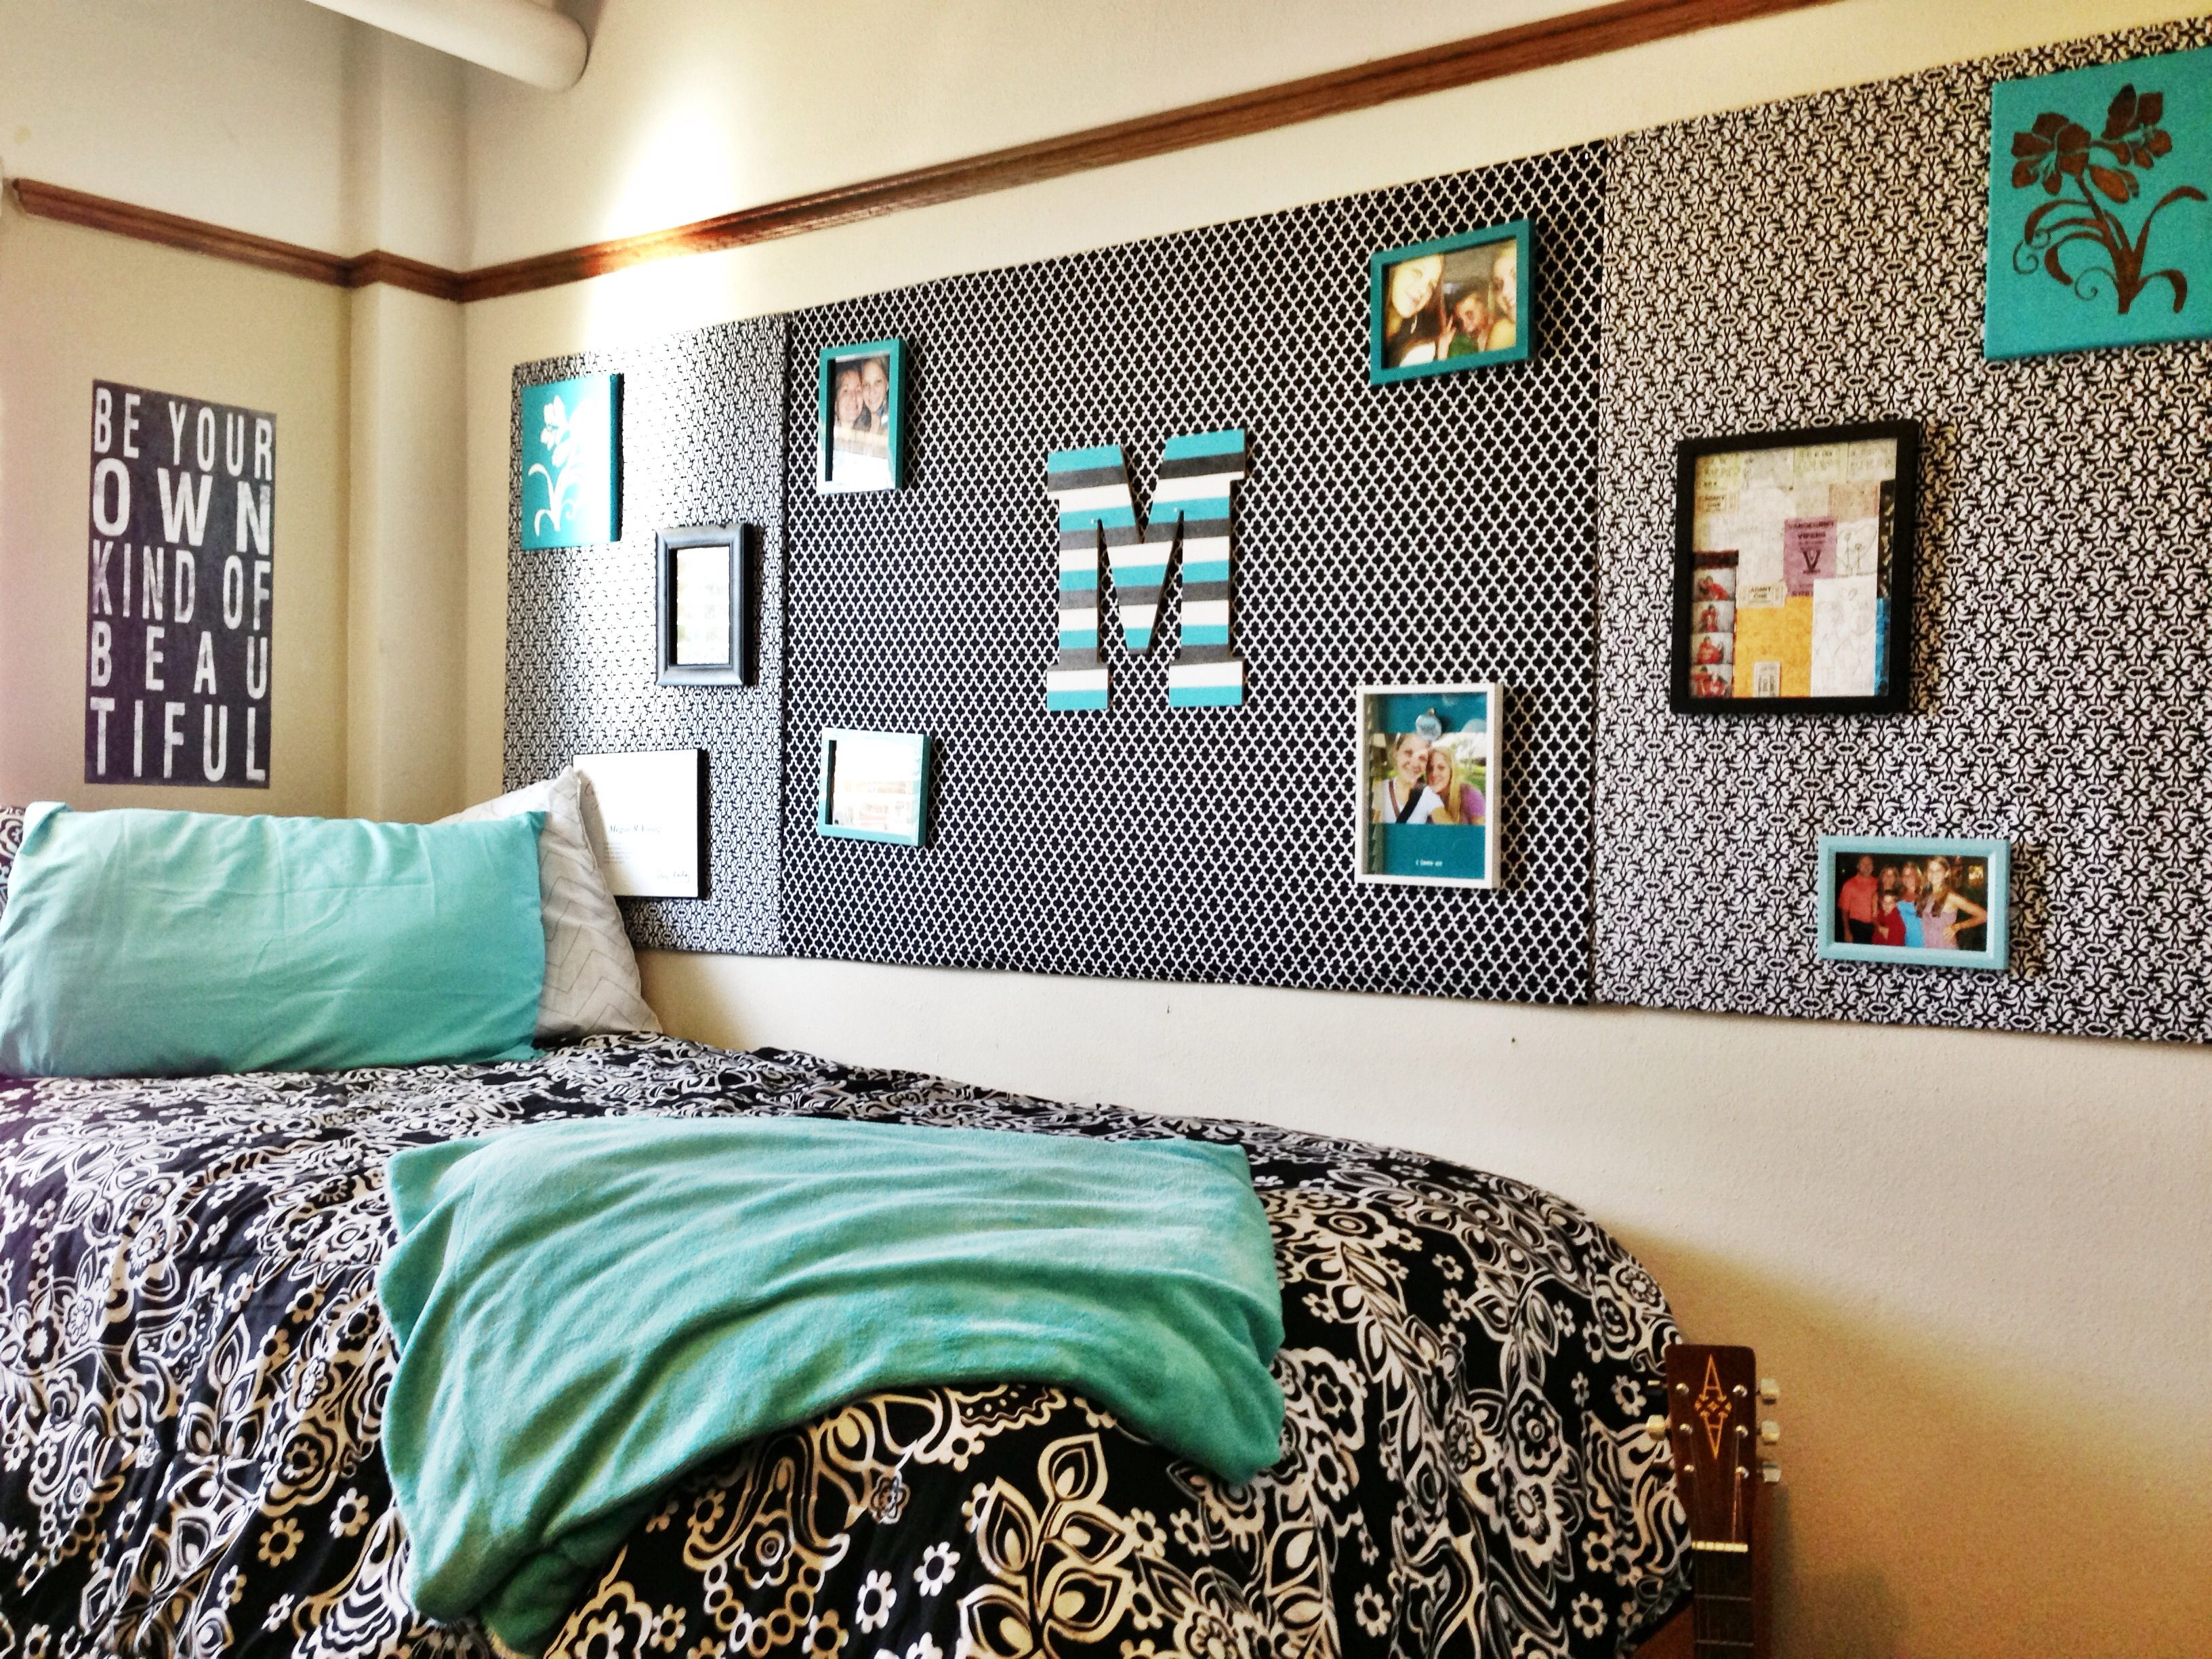 Dorm Room Wall Decor 130 best layout & decoration ideas images on pinterest | dorm room